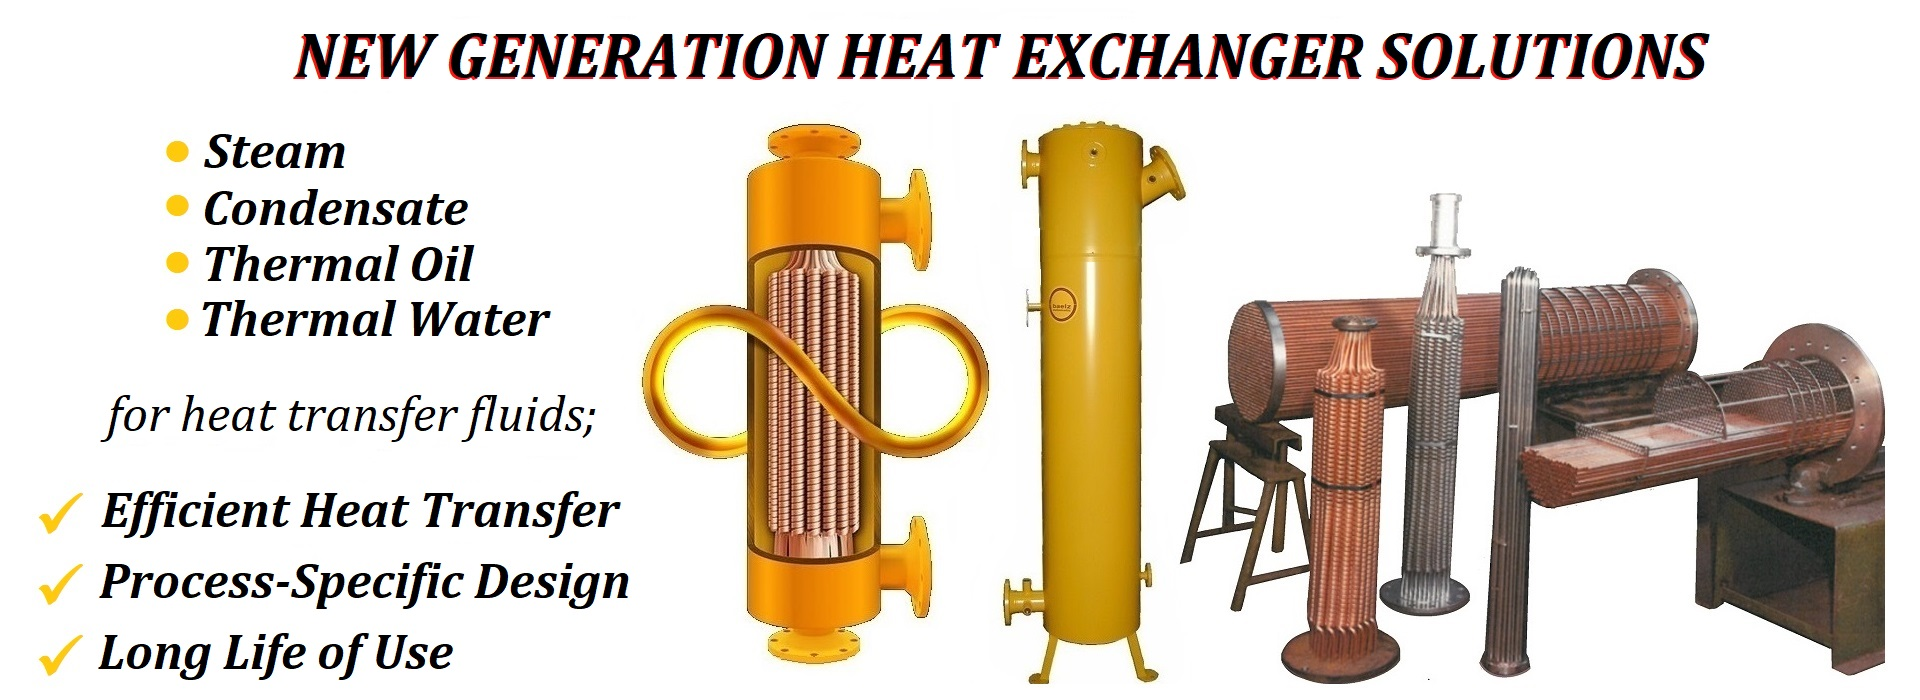 banner new generation heat exchanger solutions